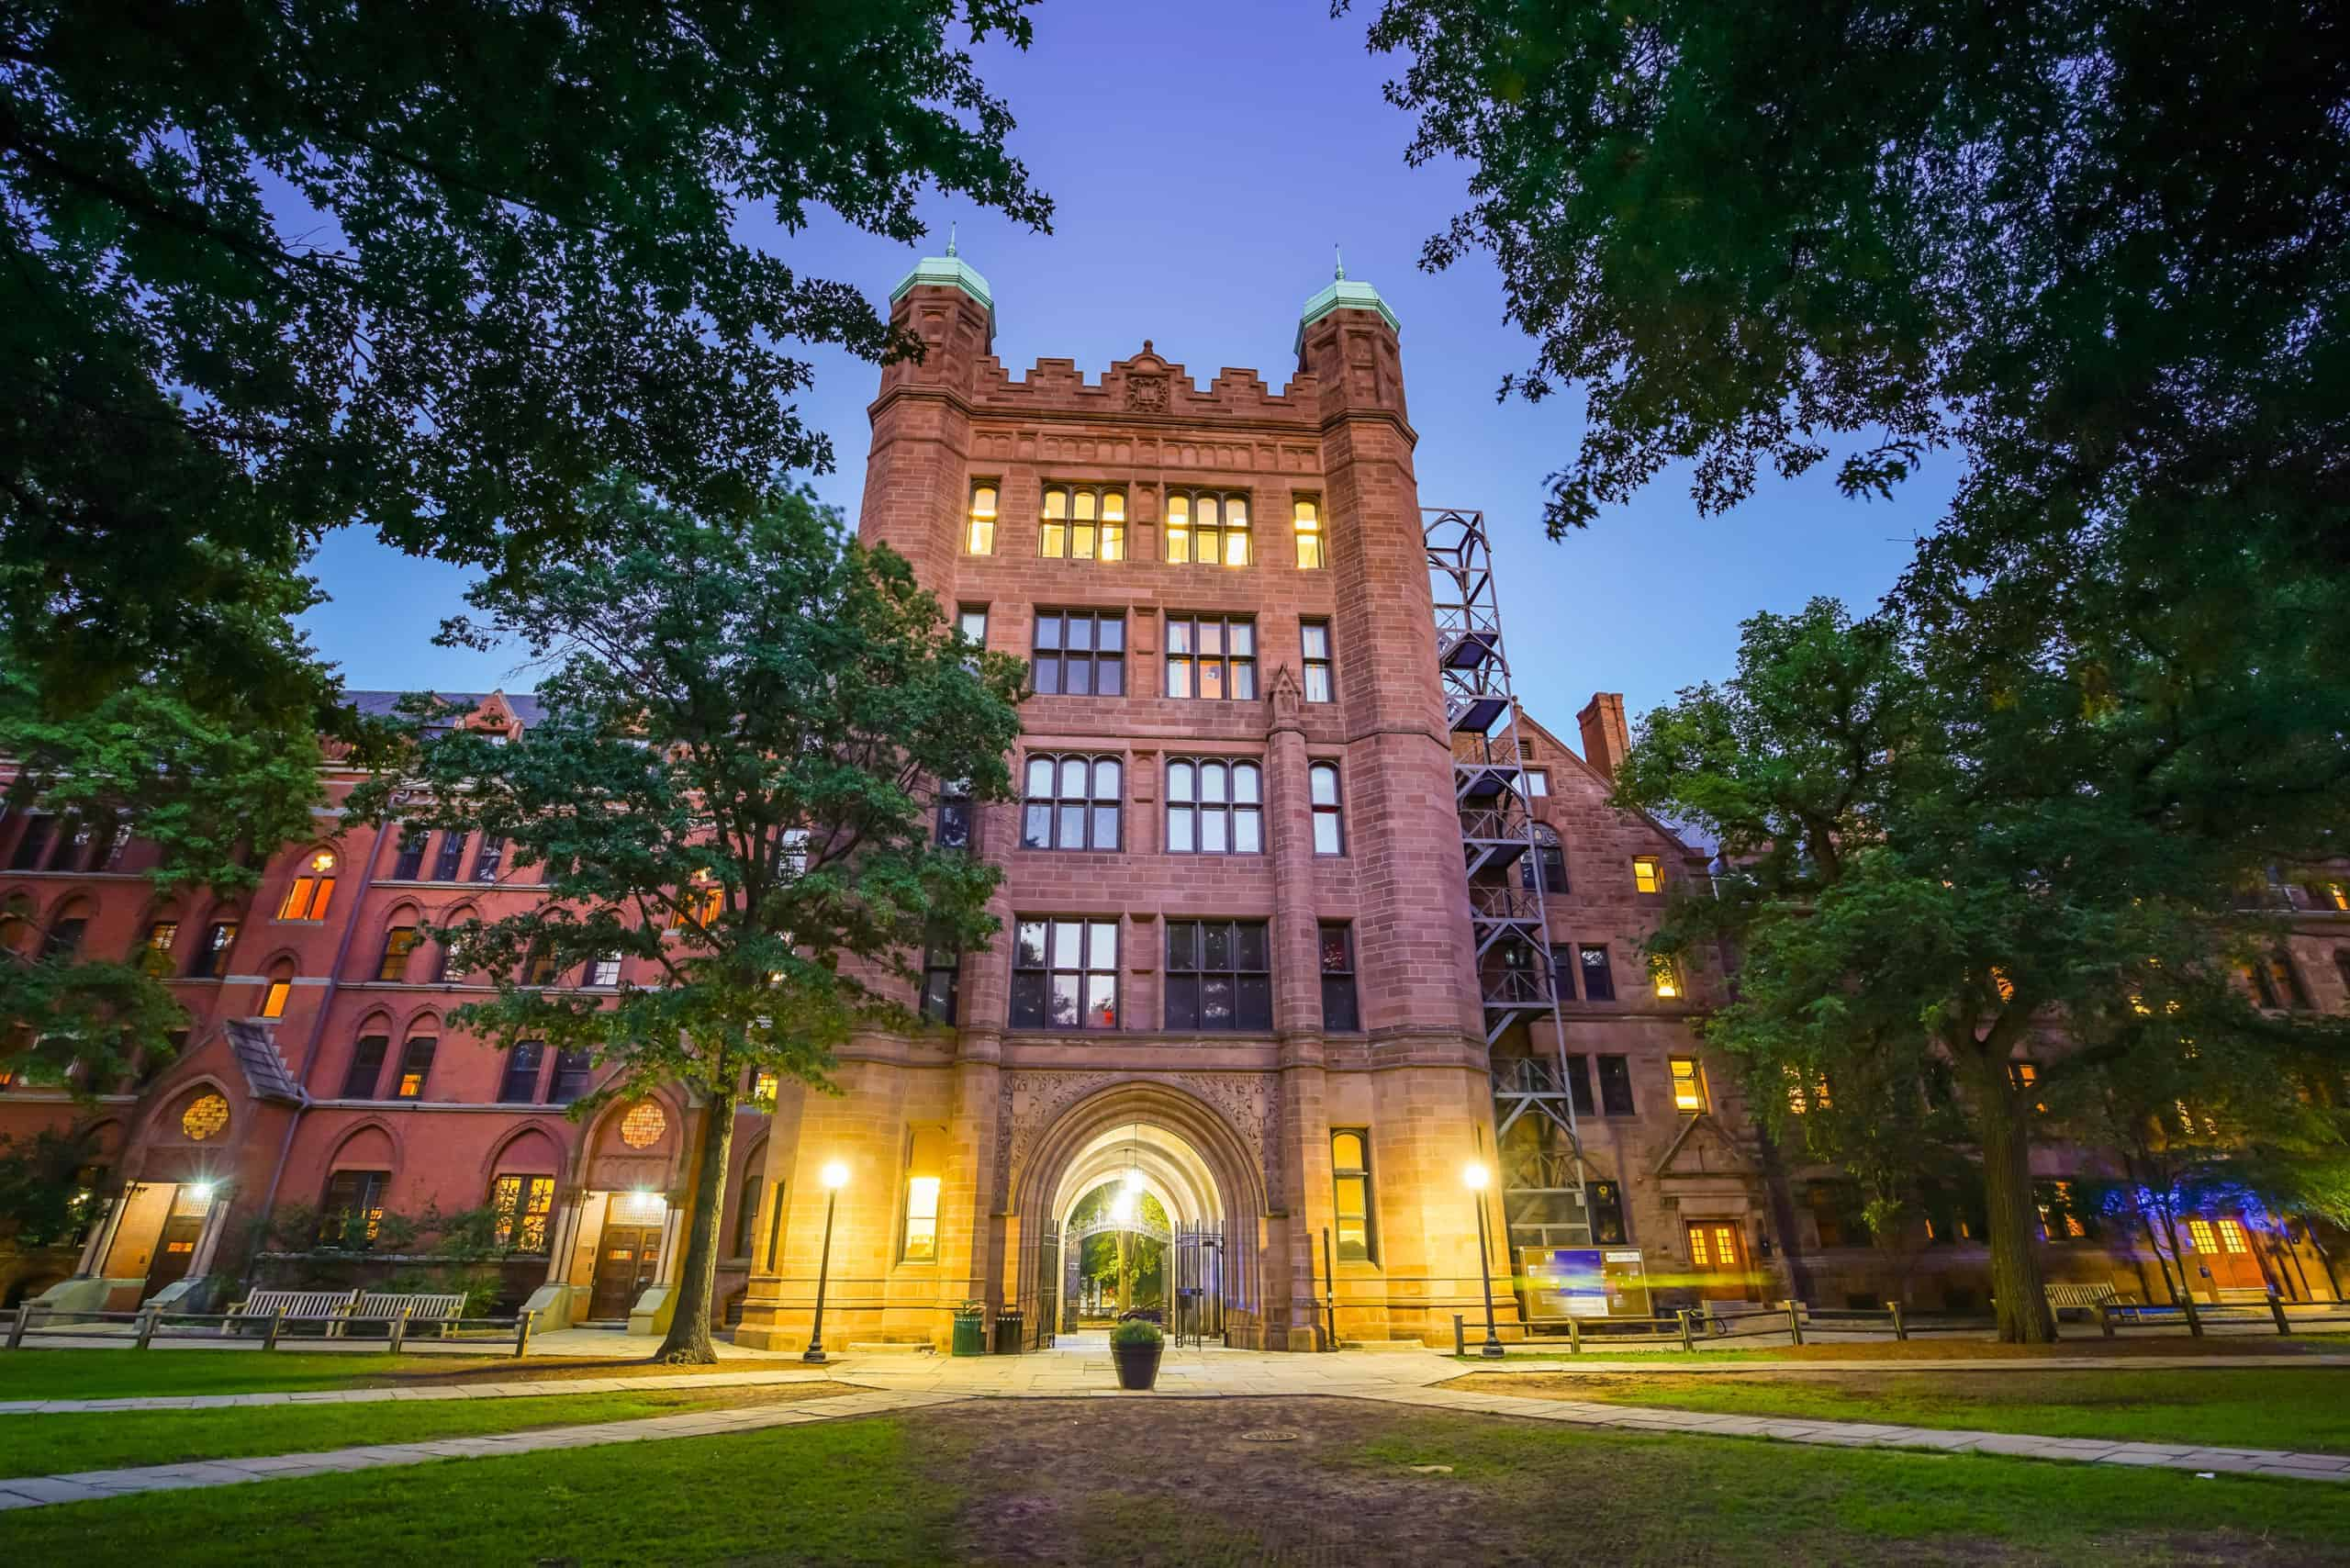 Historical building in downtown New Haven and Yale University, CT USA